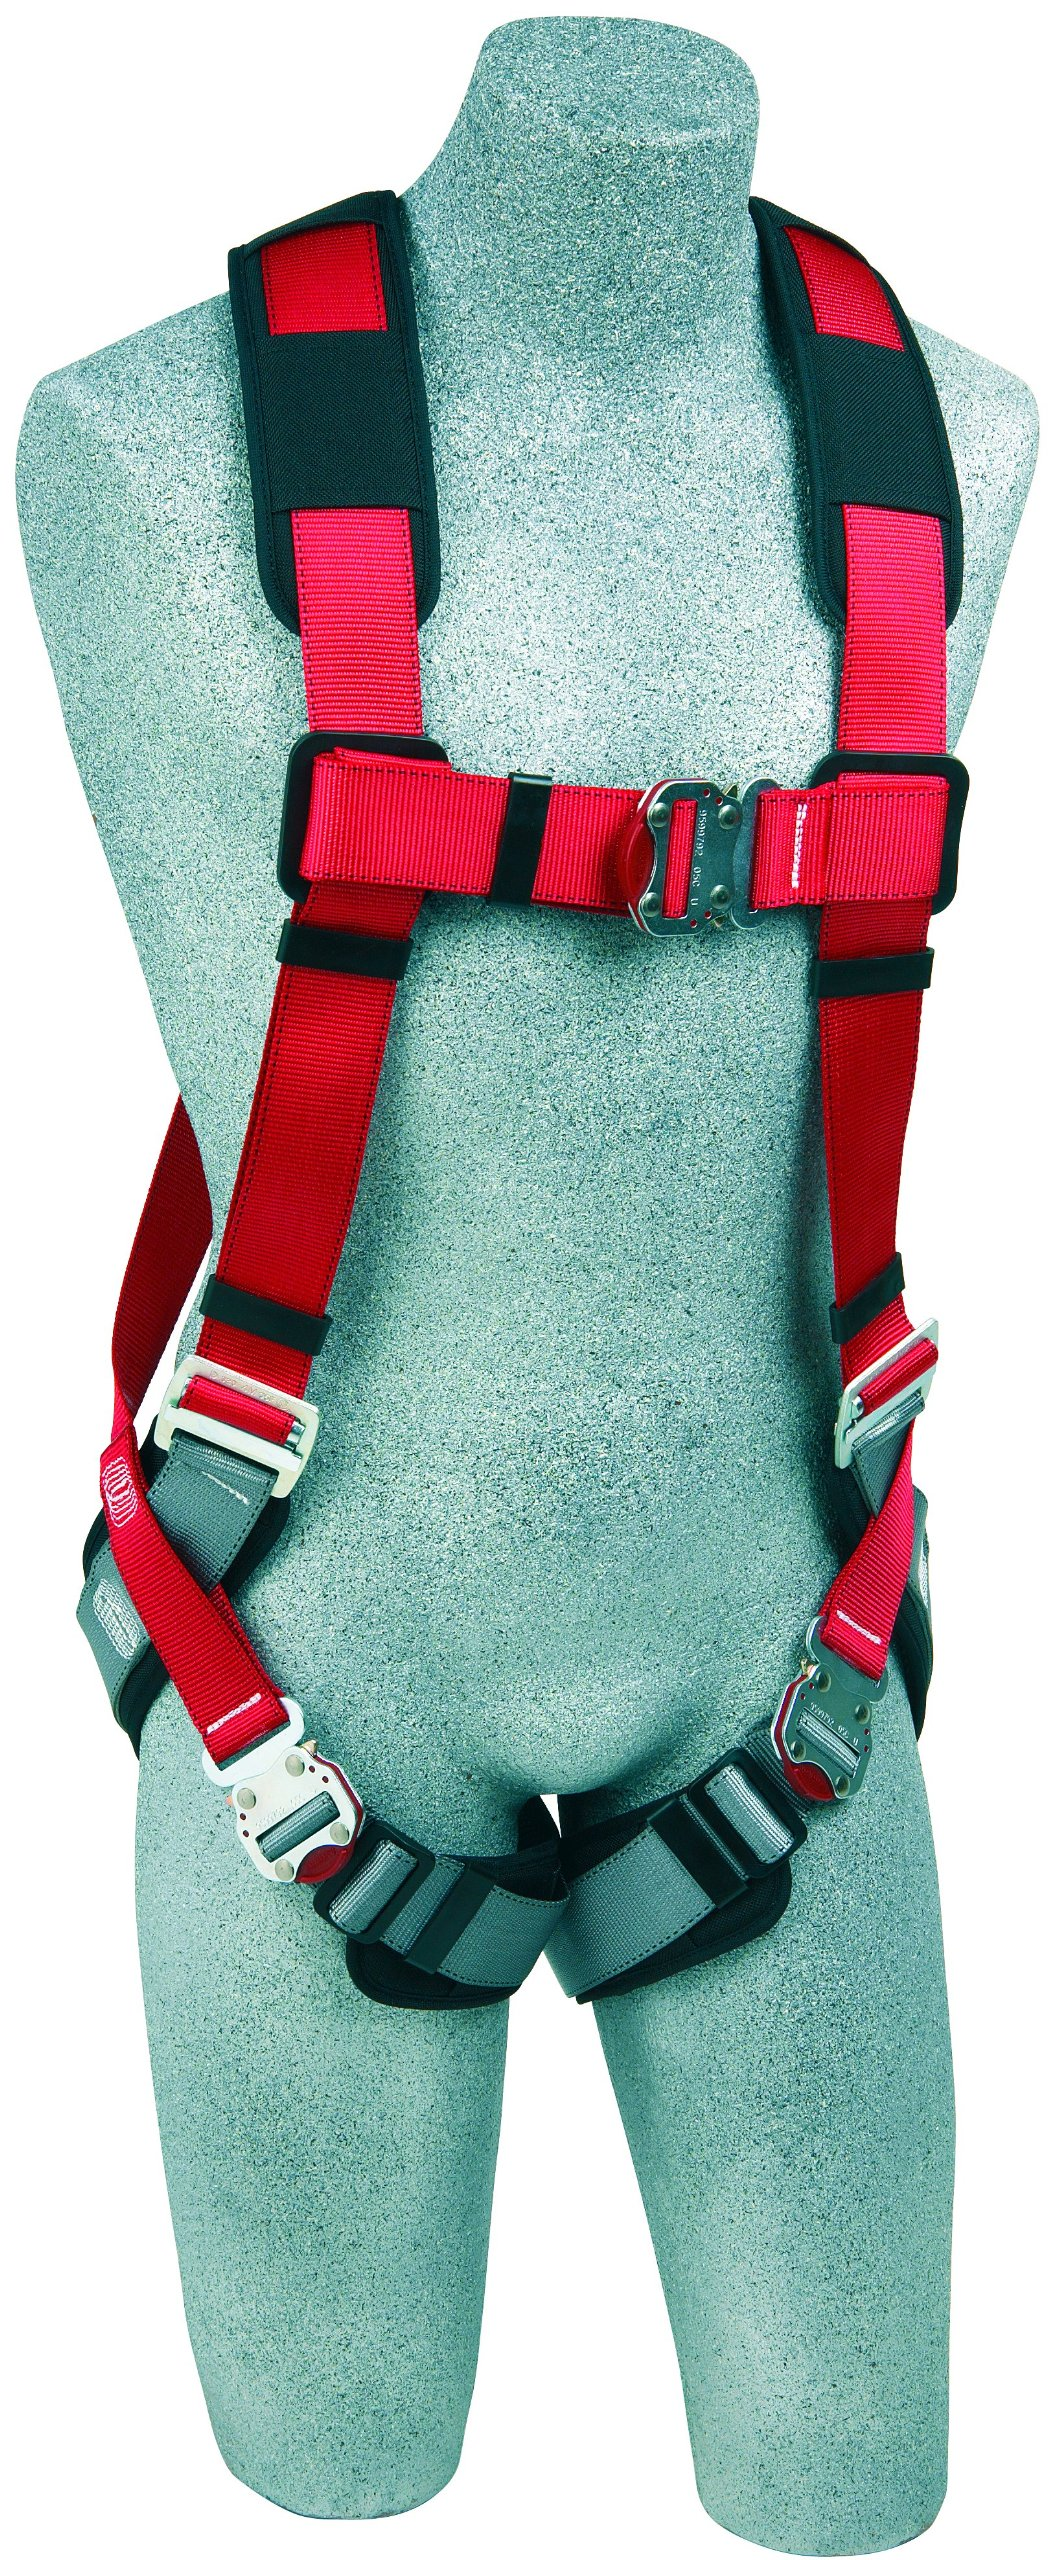 3M Protecta PRO 1191253 Fall Protection Full Body Harness with Back D-Ring,Quick Connect Buckle Legs, 420  lb. Capacity, Medium/Large, Red/Gray